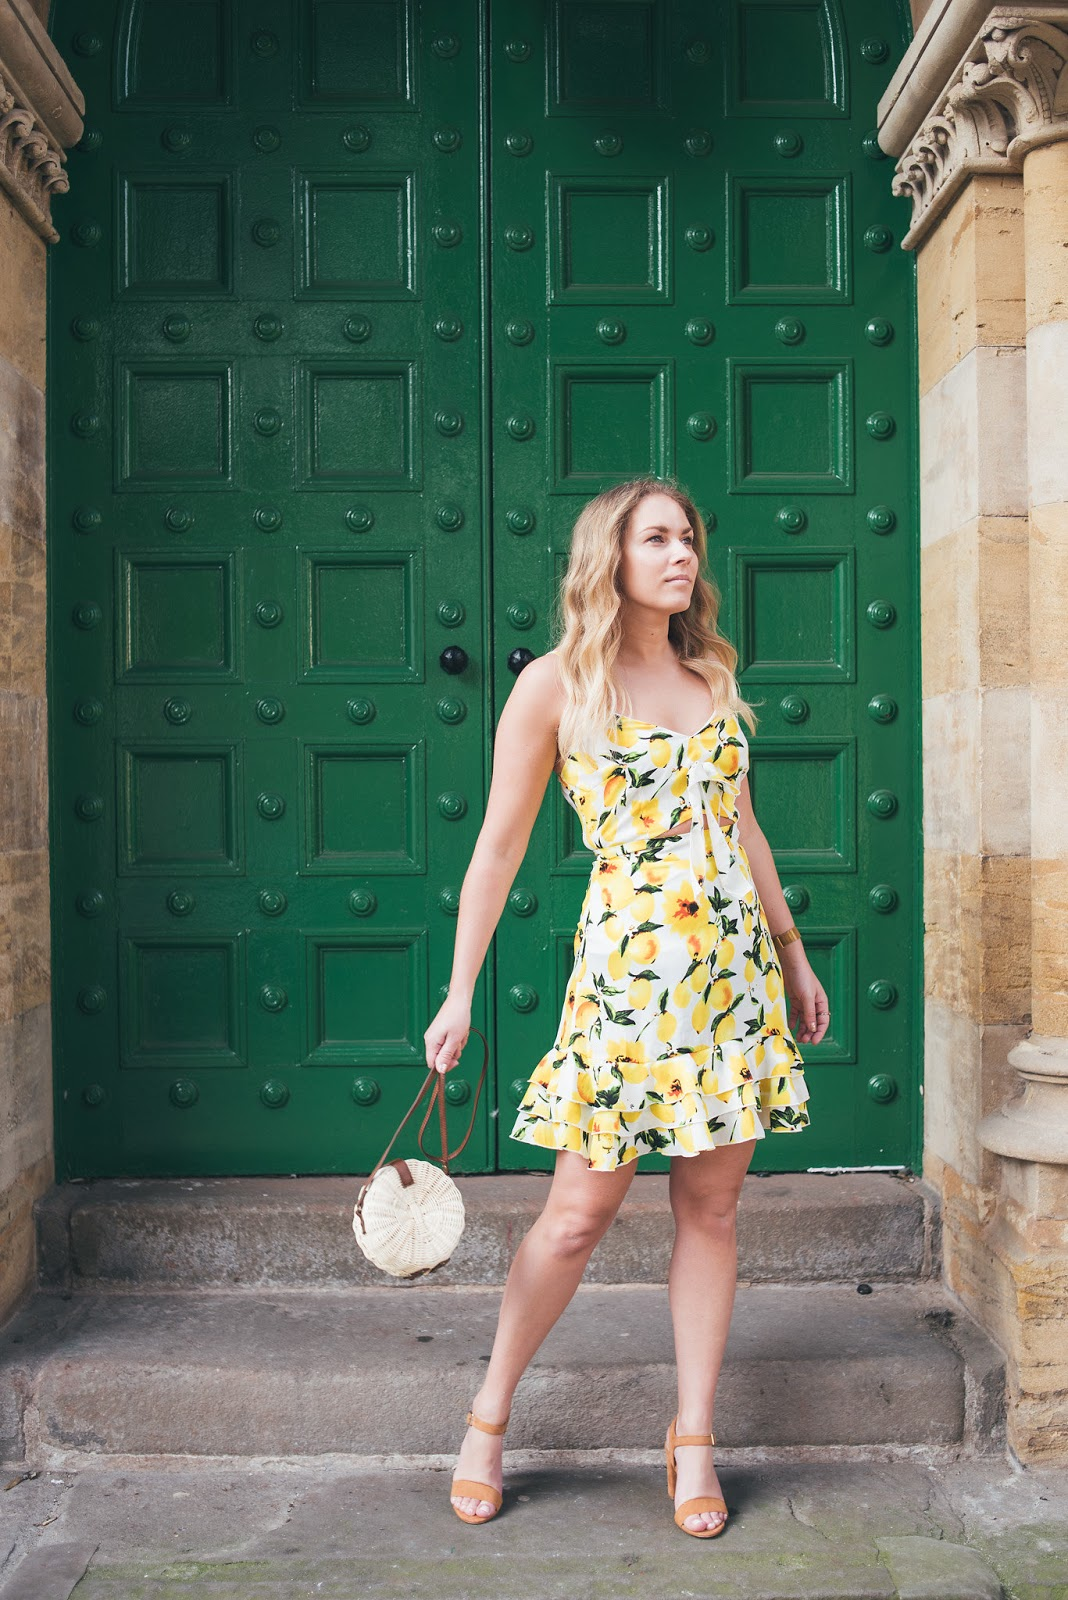 Rachel Emily in Lemon Dress swinging Pale round straw bag